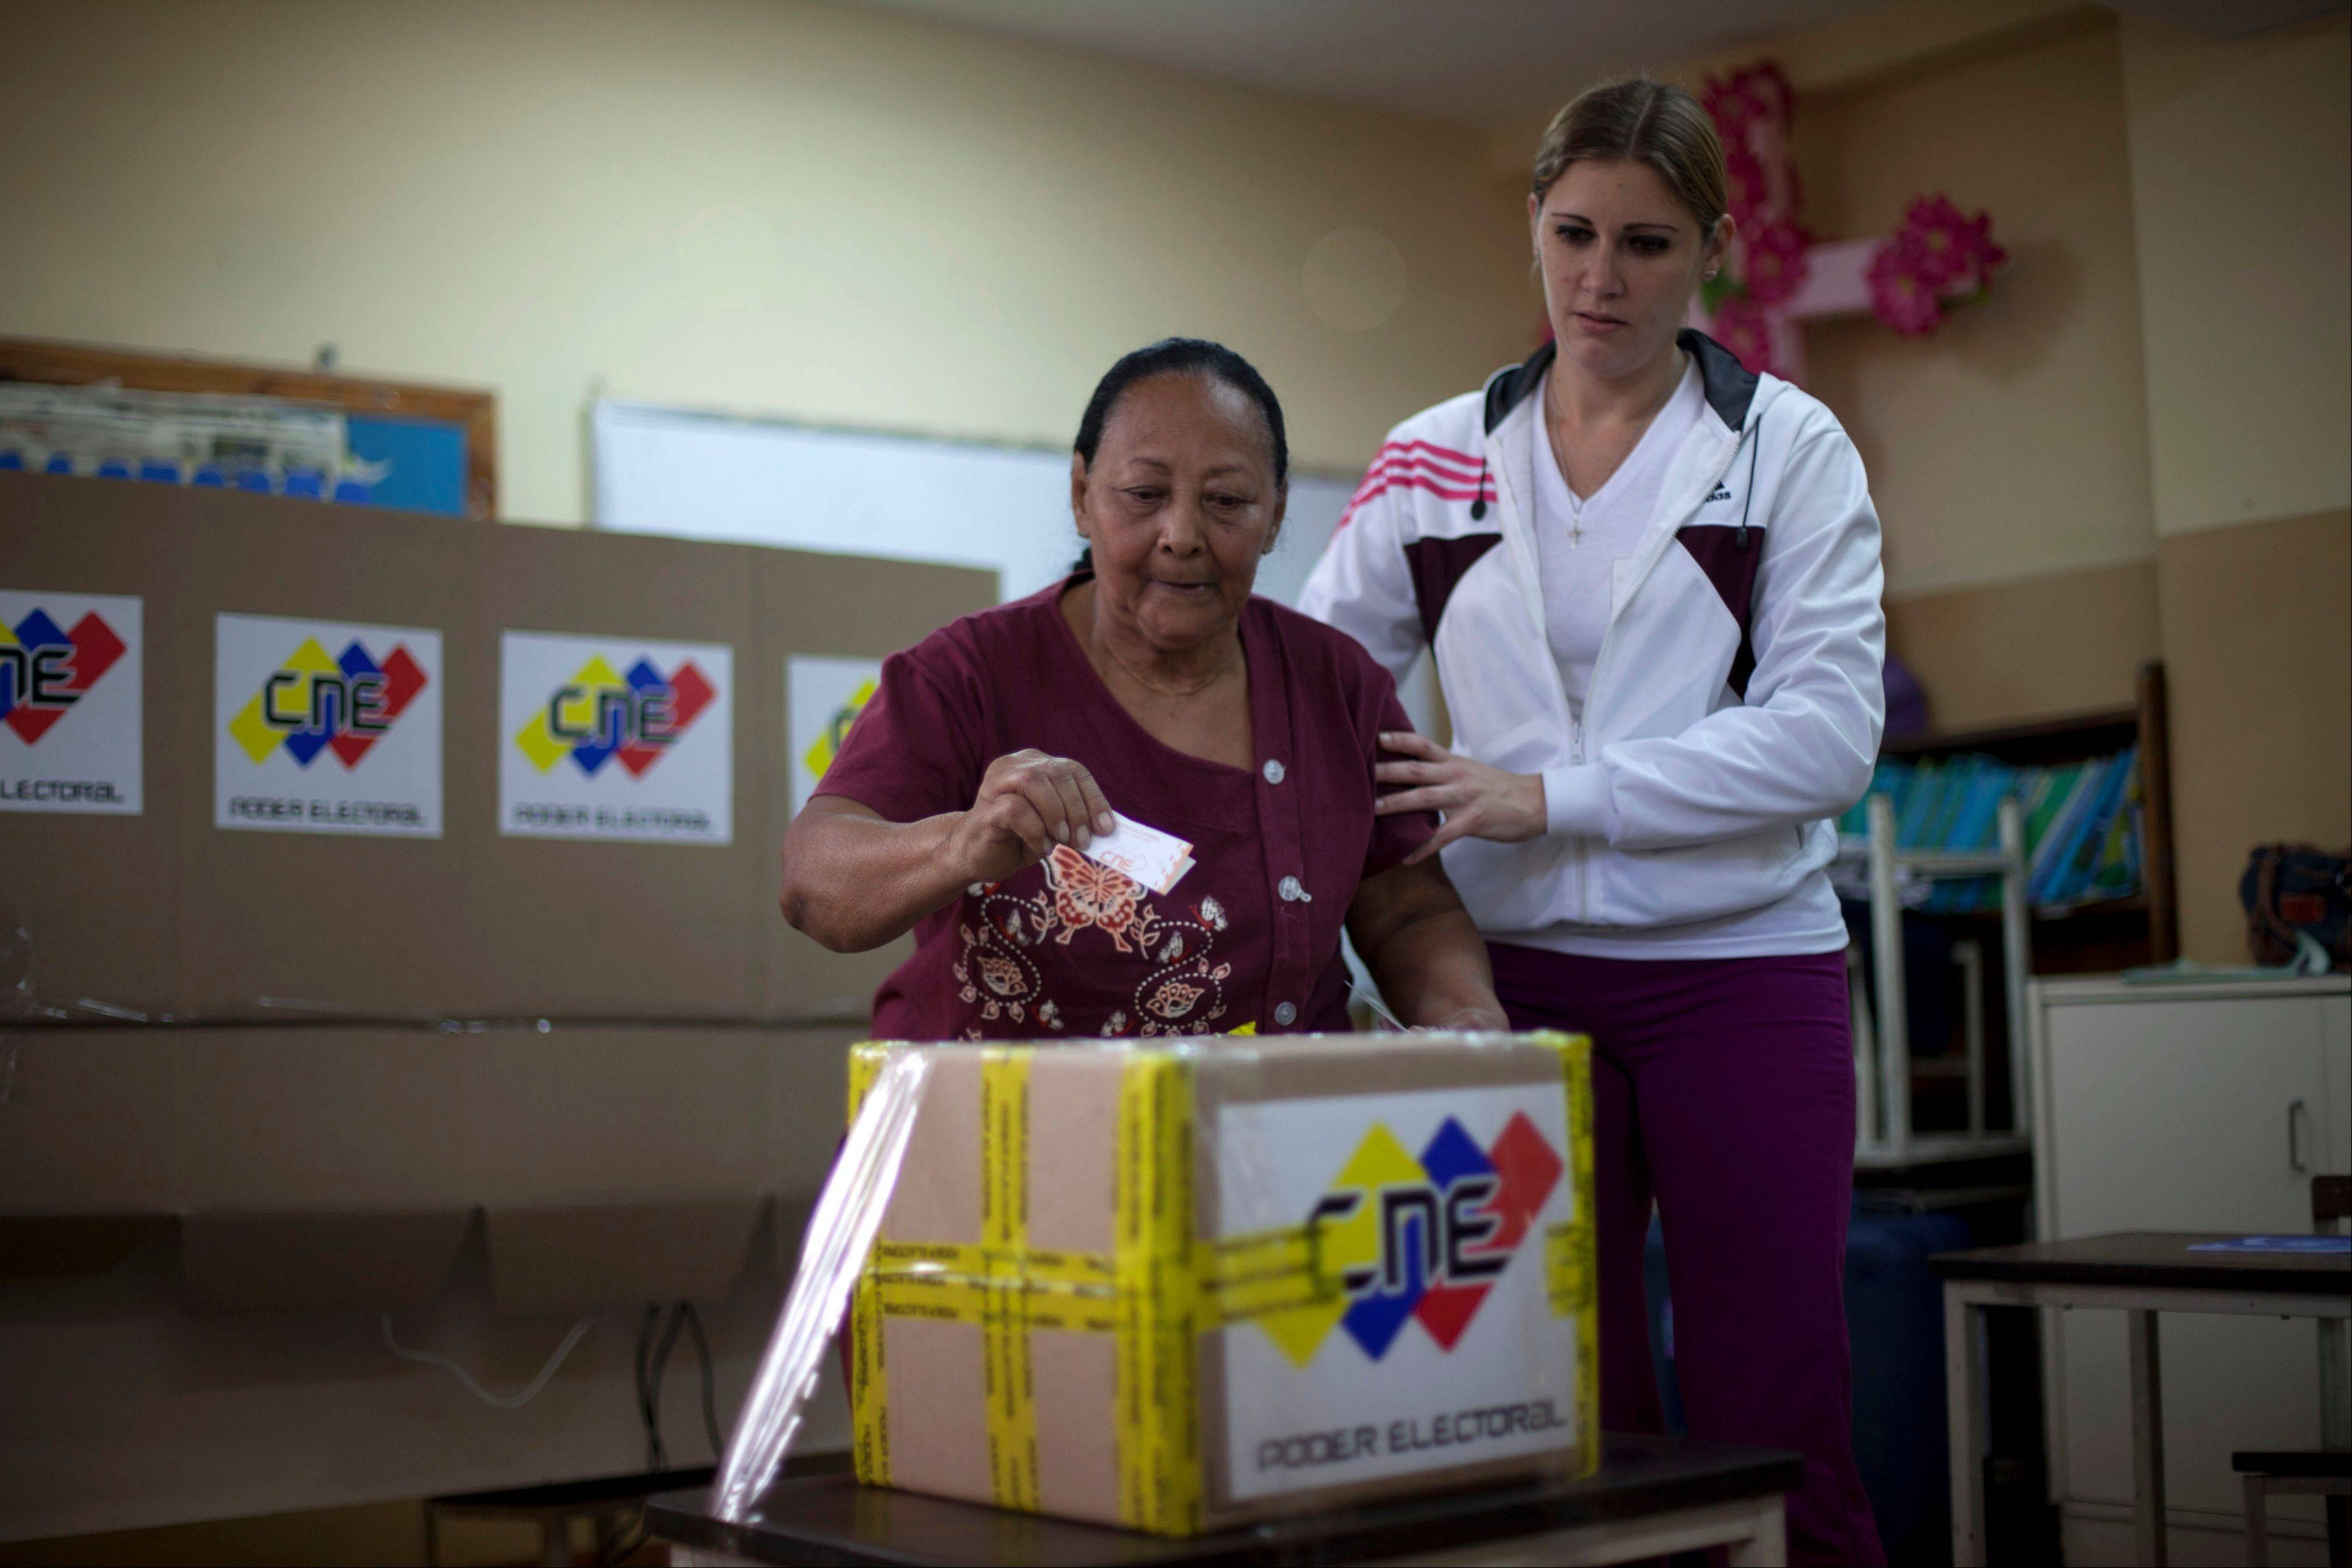 A woman is assisted as she puts her ballot in a box during the presidential election at a polling station in Caracas, Venezuela, Sunday, Oct. 7, 2012. President Hugo Chavez is running for re-election against opposition candidate Henrique Capriles.